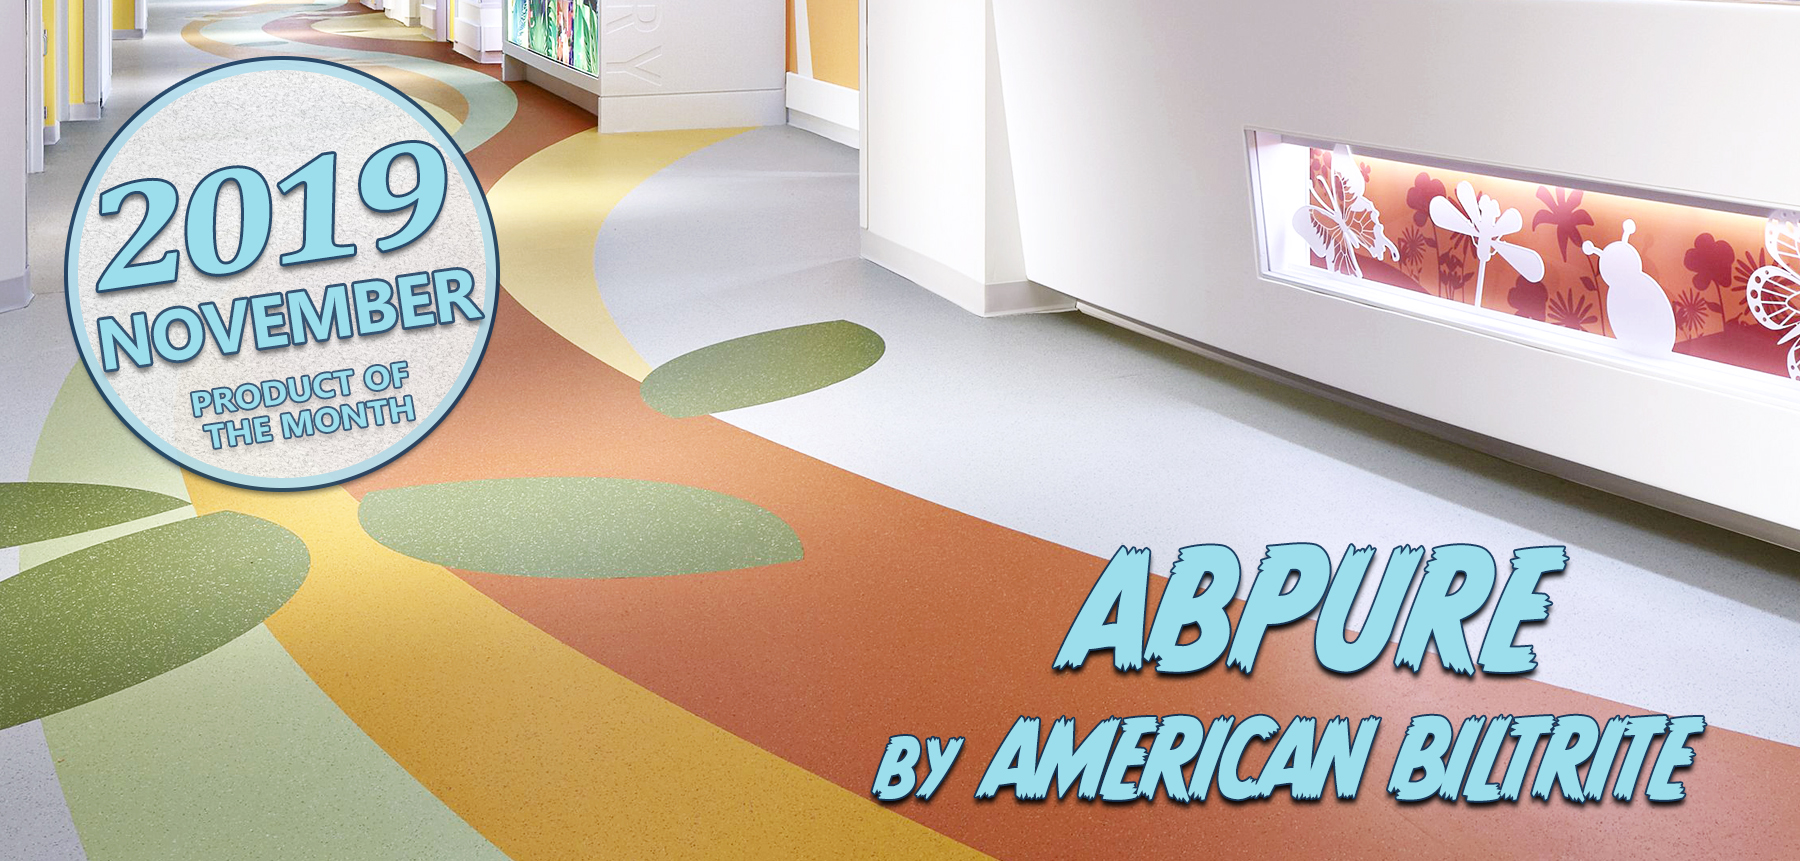 Hospital Flooring - commercial hospital flooring - rubber flooring - abpure by american biltrite